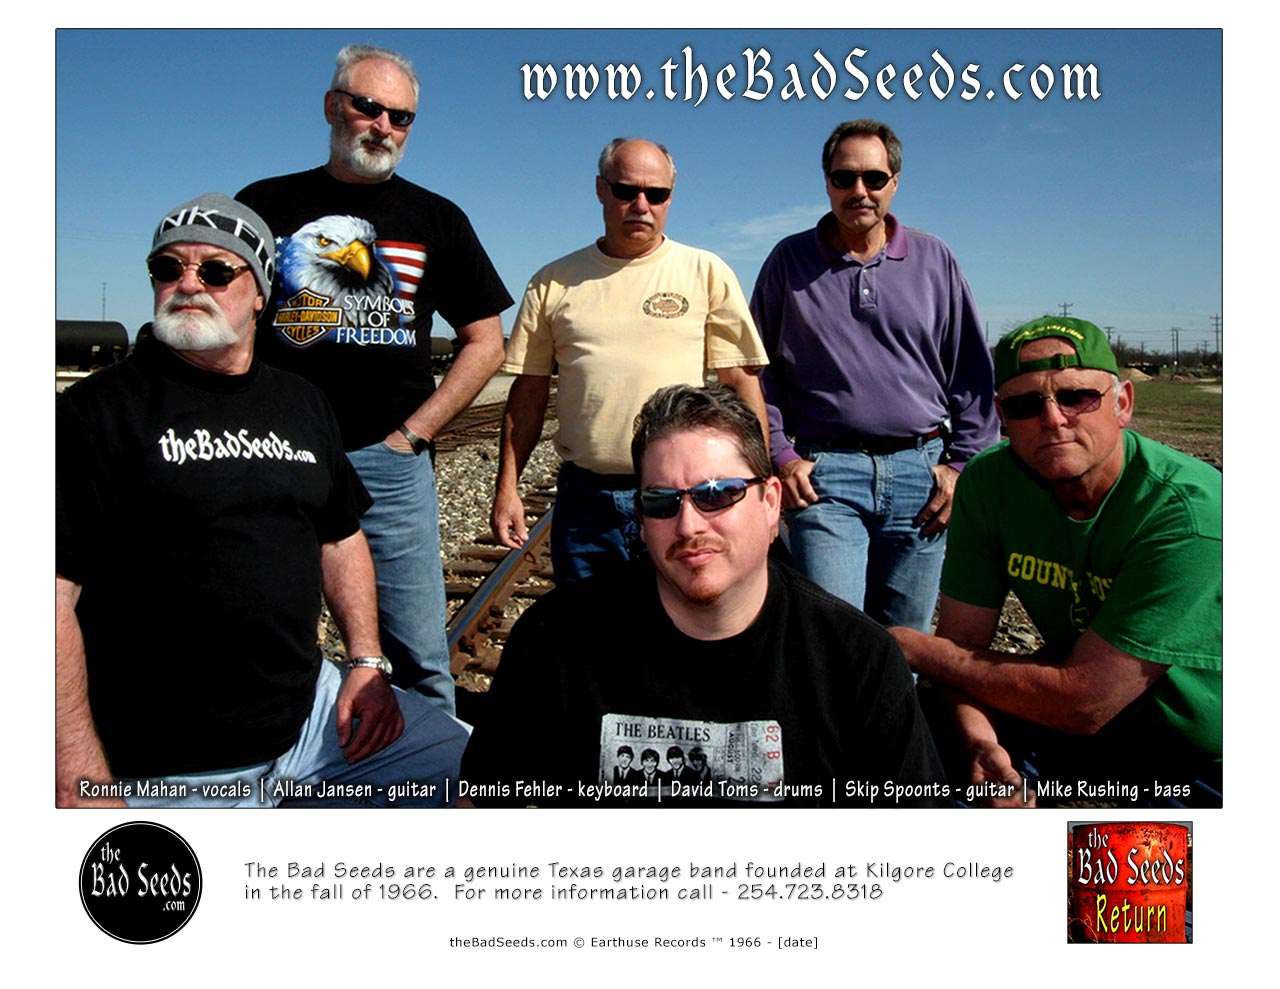 Ronnie Mahan - vocals, Allan Jansen - guitar, Dennis Fehler - keys, David Toms - drums, Skip Spoonts - guitar, Mike Rushing - bass